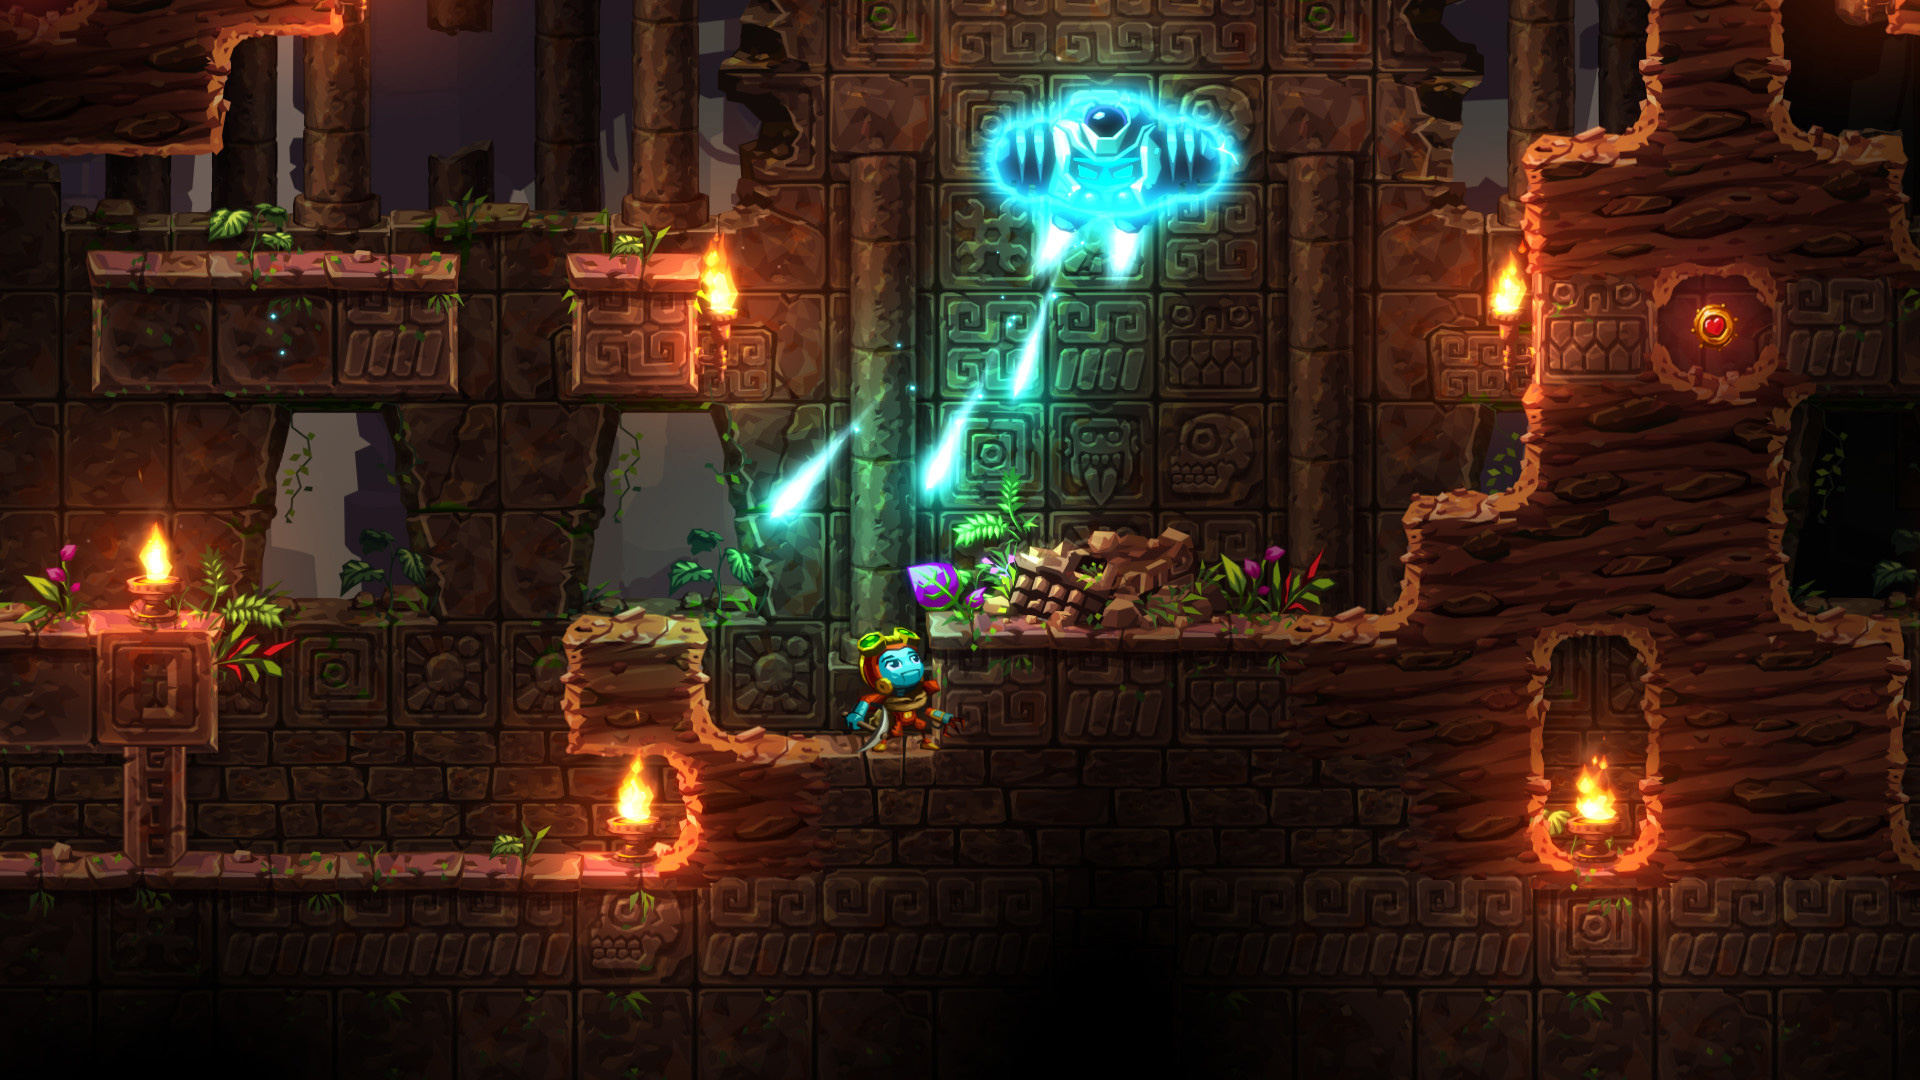 steamworld dig 2 switch indie games